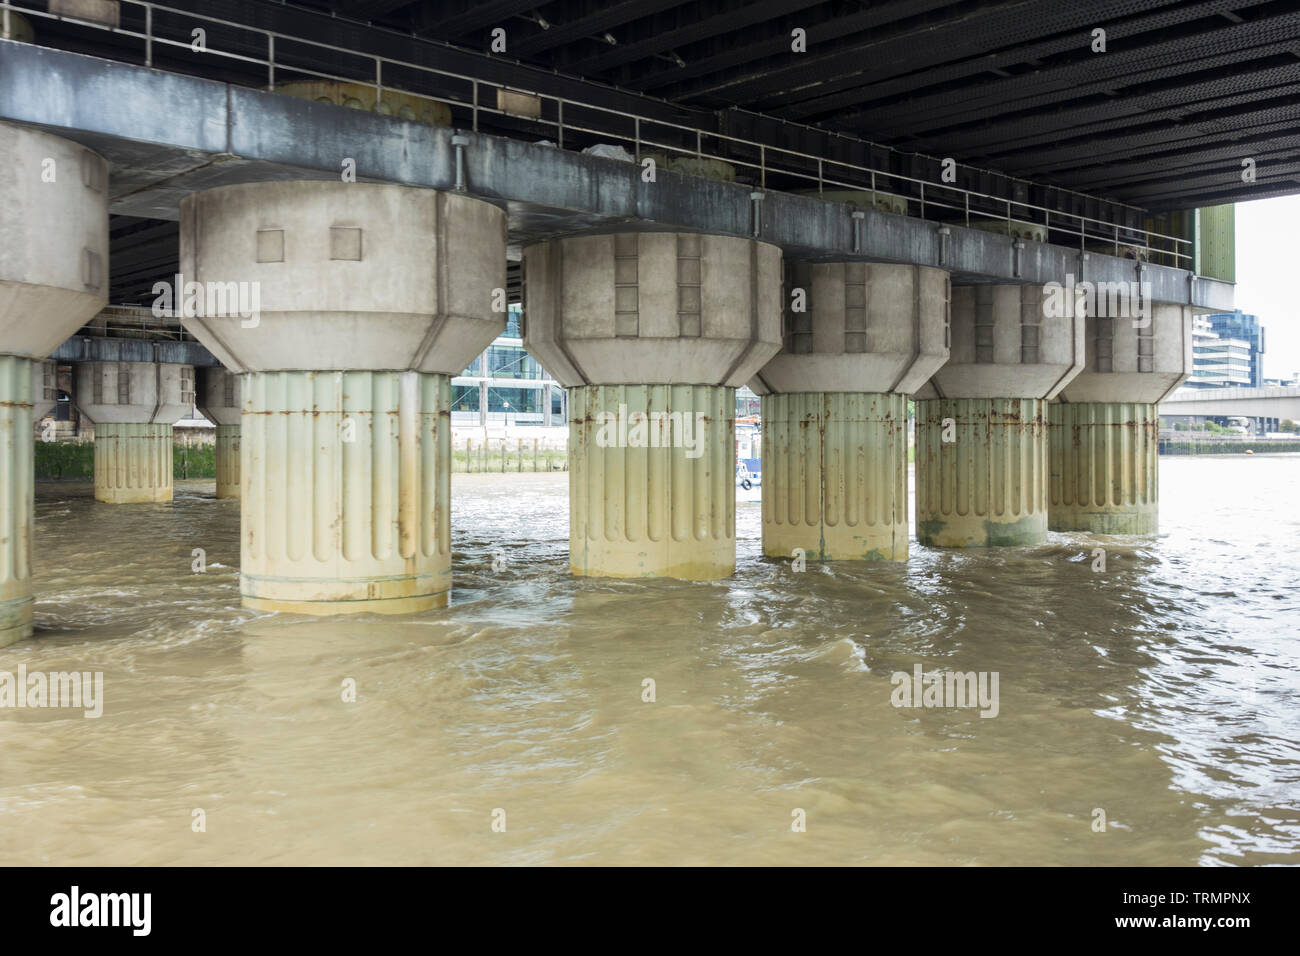 Cannon Street Railway Bridge supports as seen from the River Thames, London, UK - Stock Image